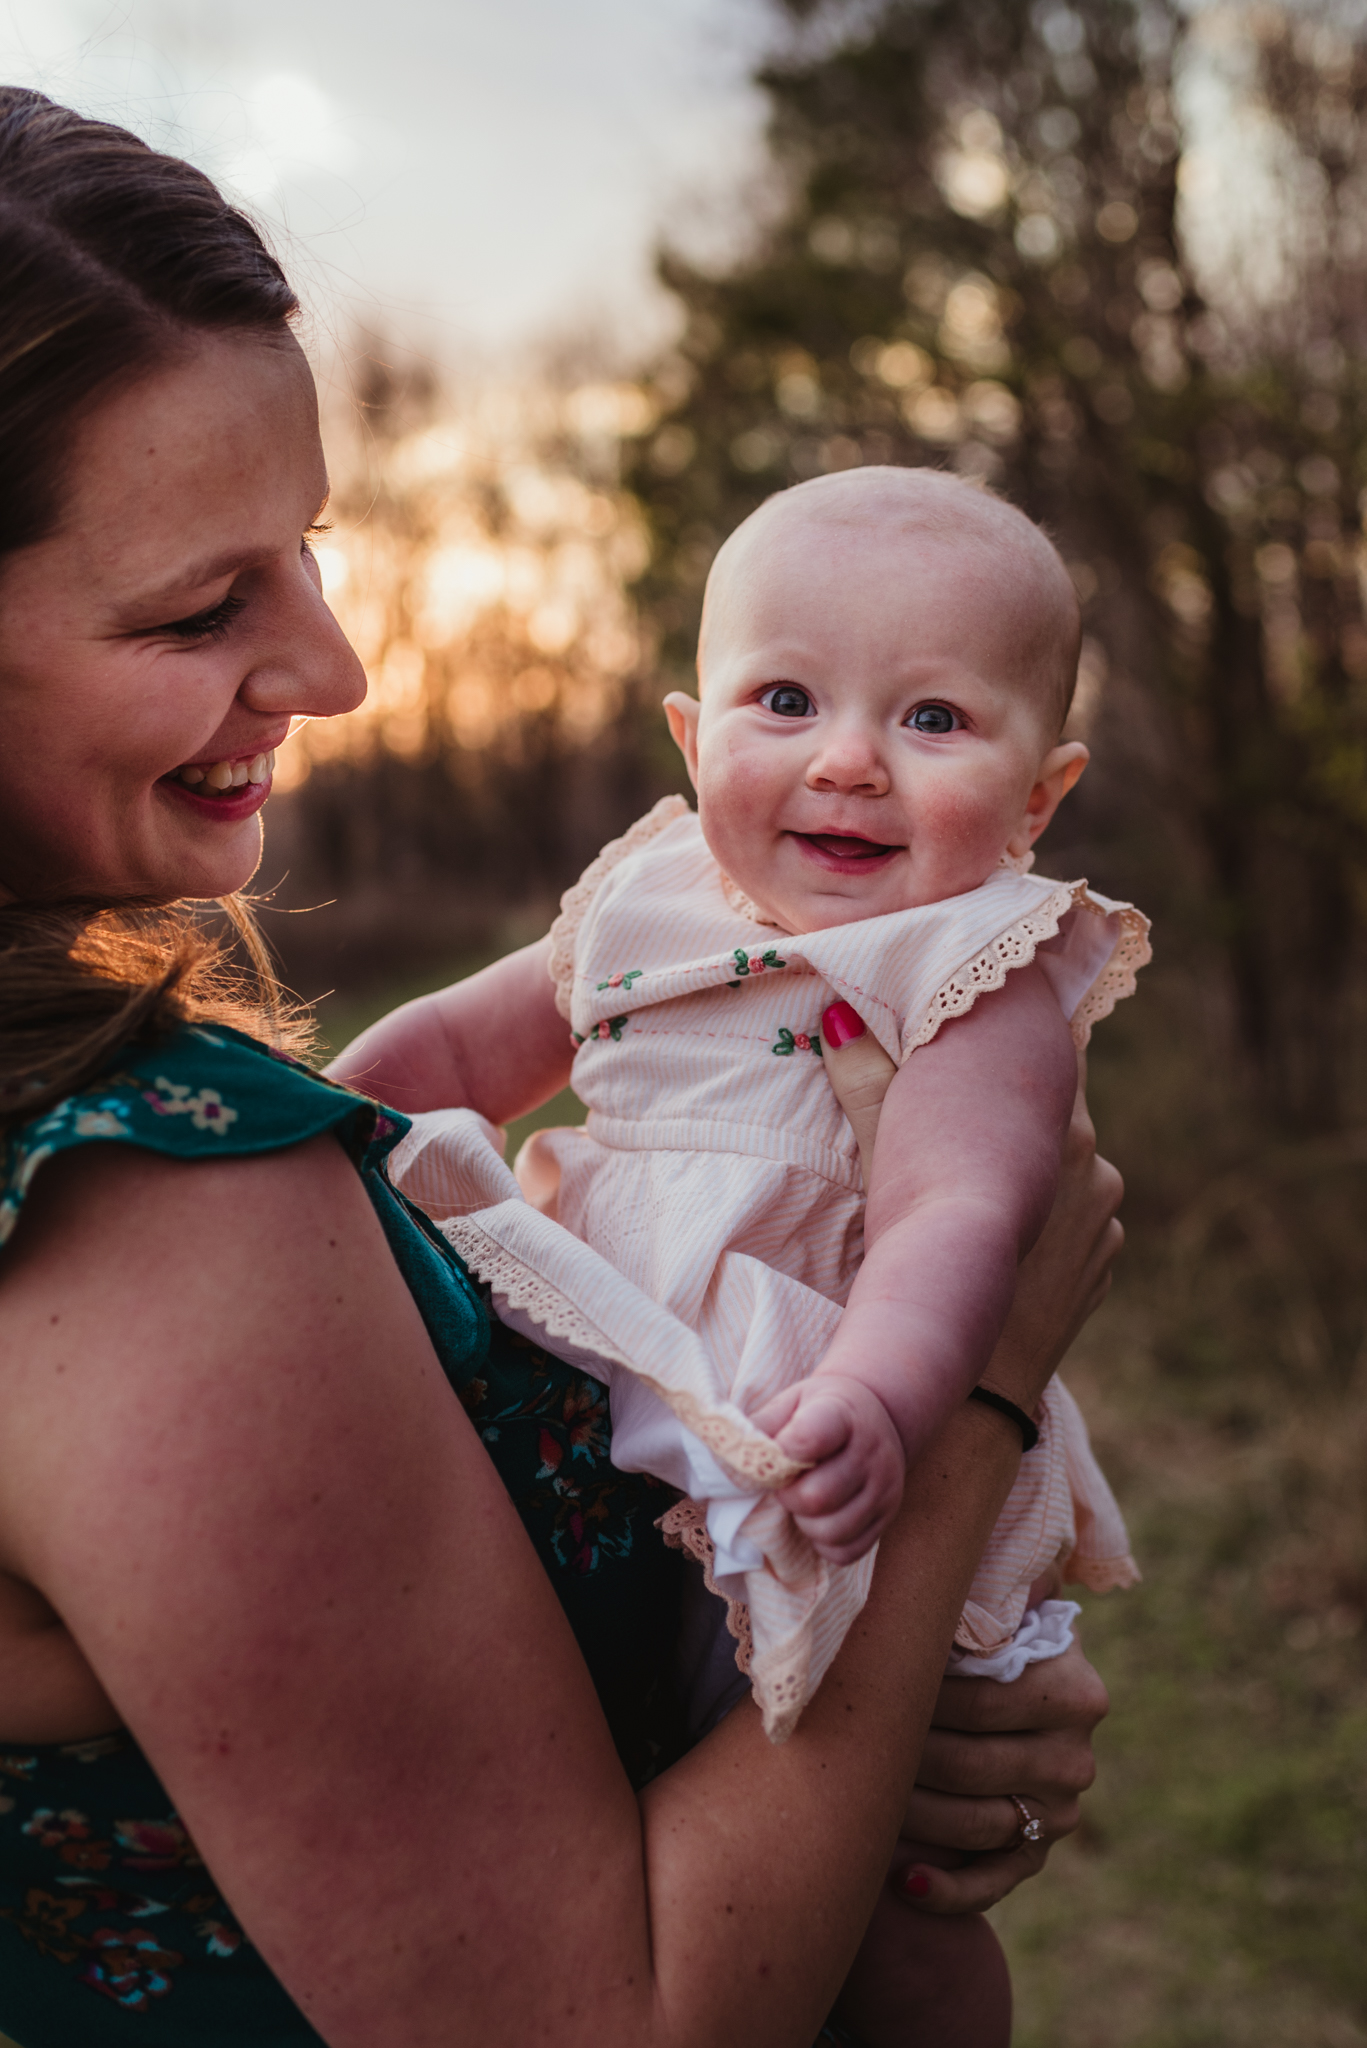 The baby smiles with her mom at sunset during their family photos with Rose Trail Images at Horseshoe Farm Park in Wake Forest, NC.